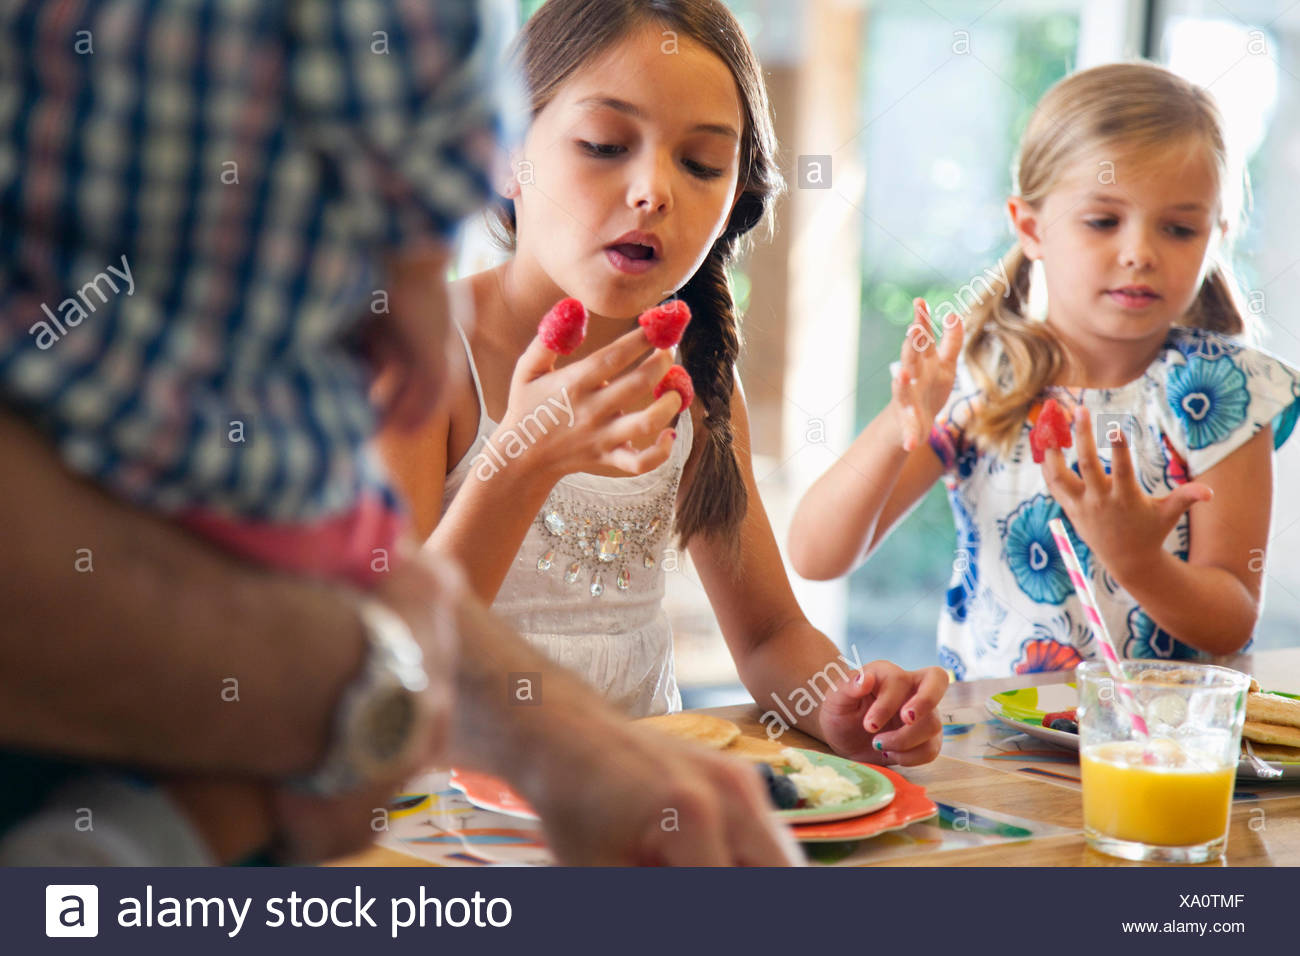 Two sisters with raspberries on their fingers at kitchen breakfast bar - Stock Image